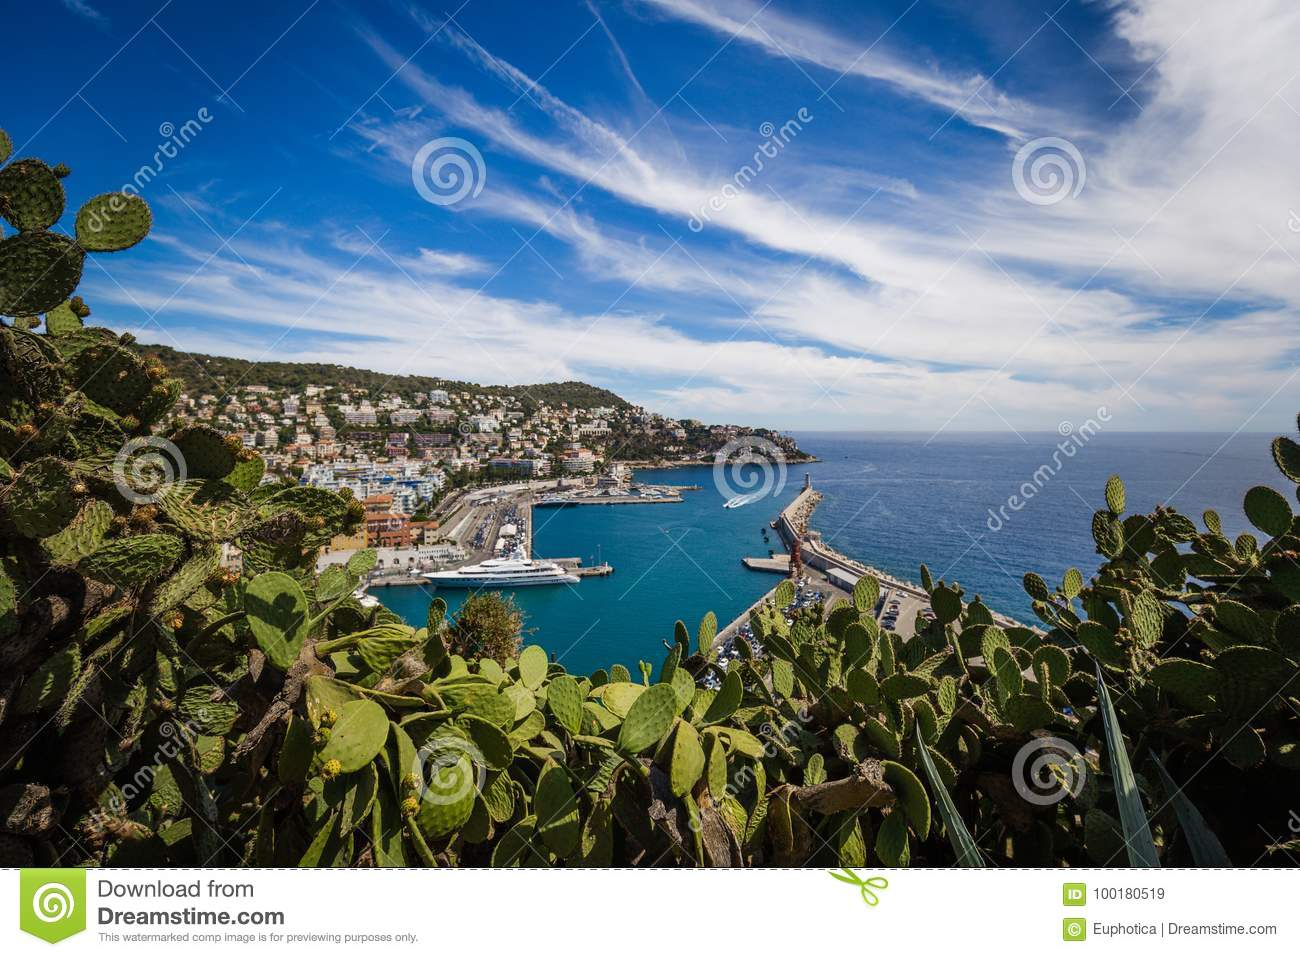 Port Lympia as seen from Colline du Chateau - Nice, France